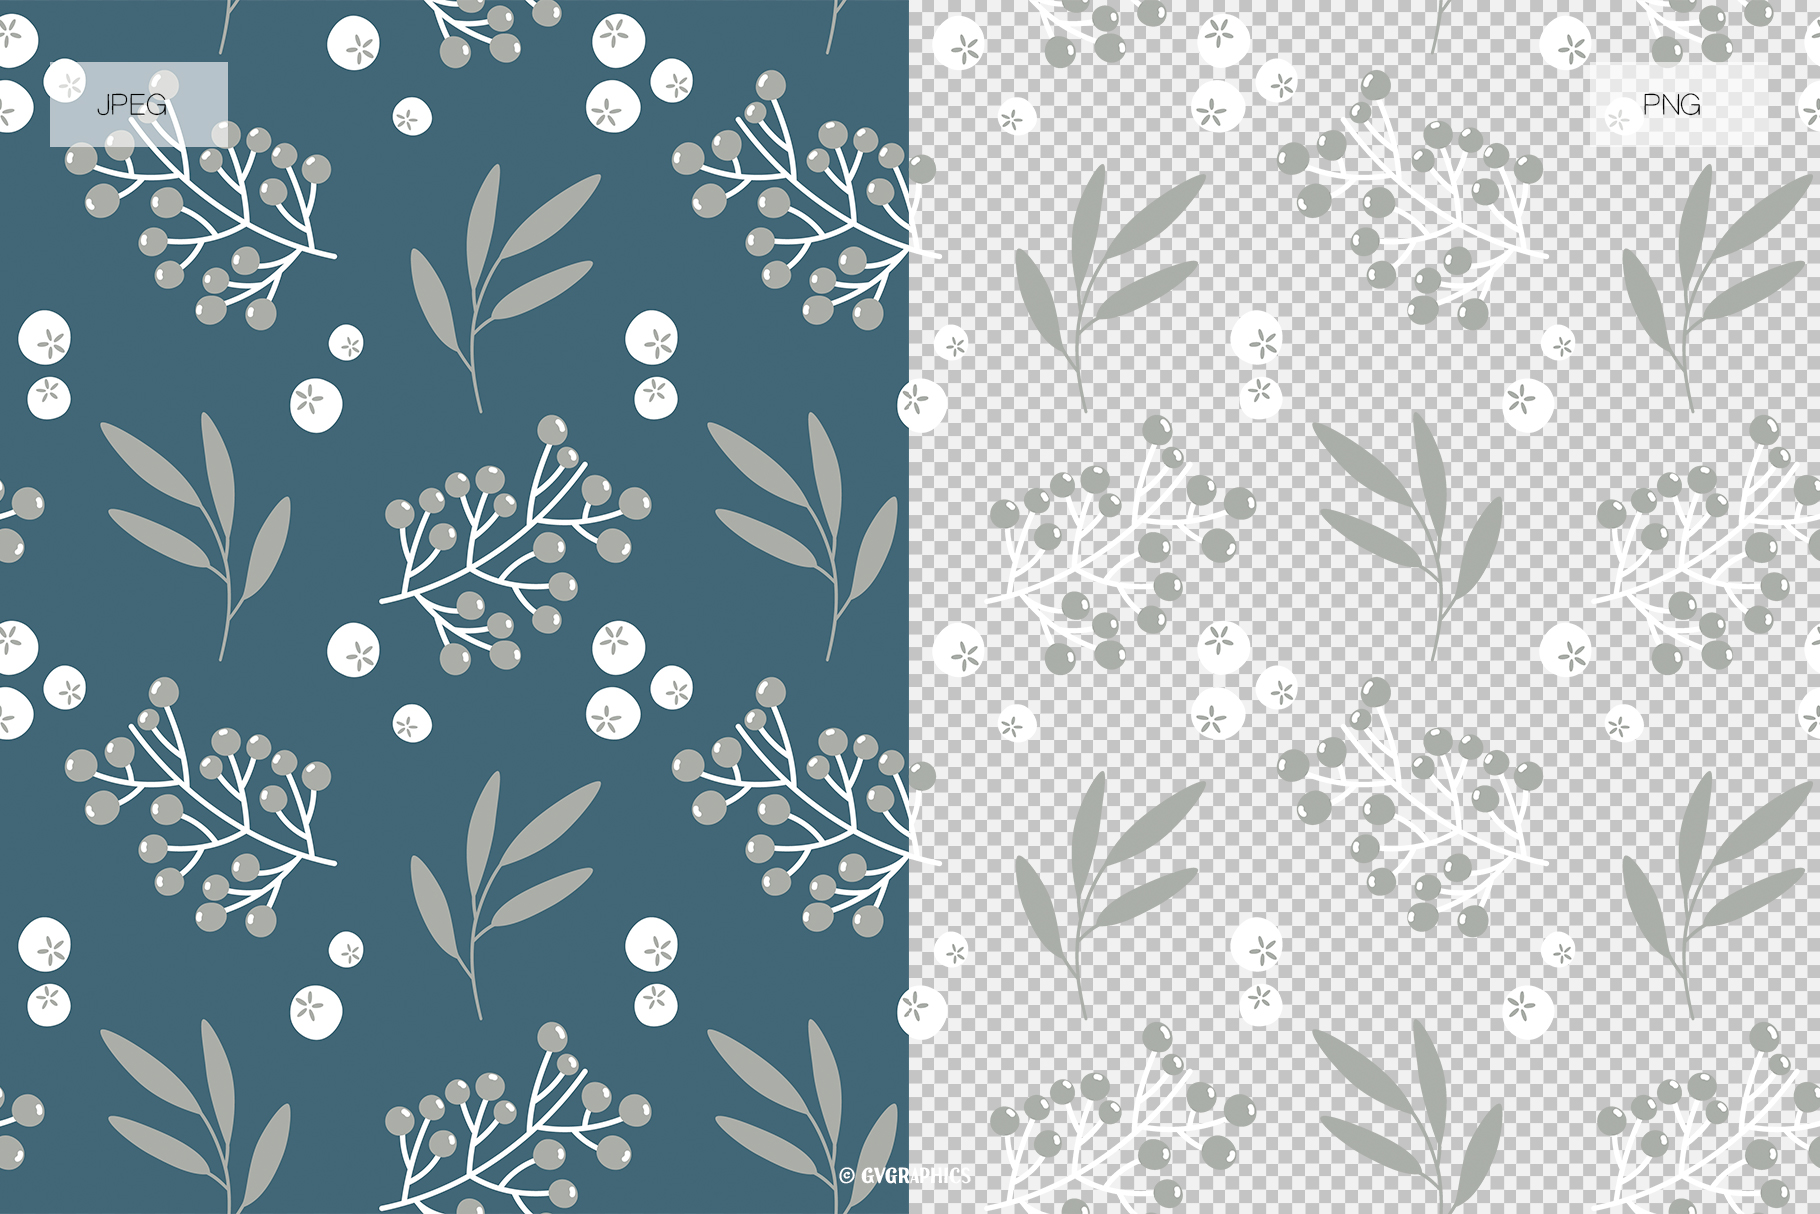 Christmas Seamless Patterns JPG and PNG Examples.